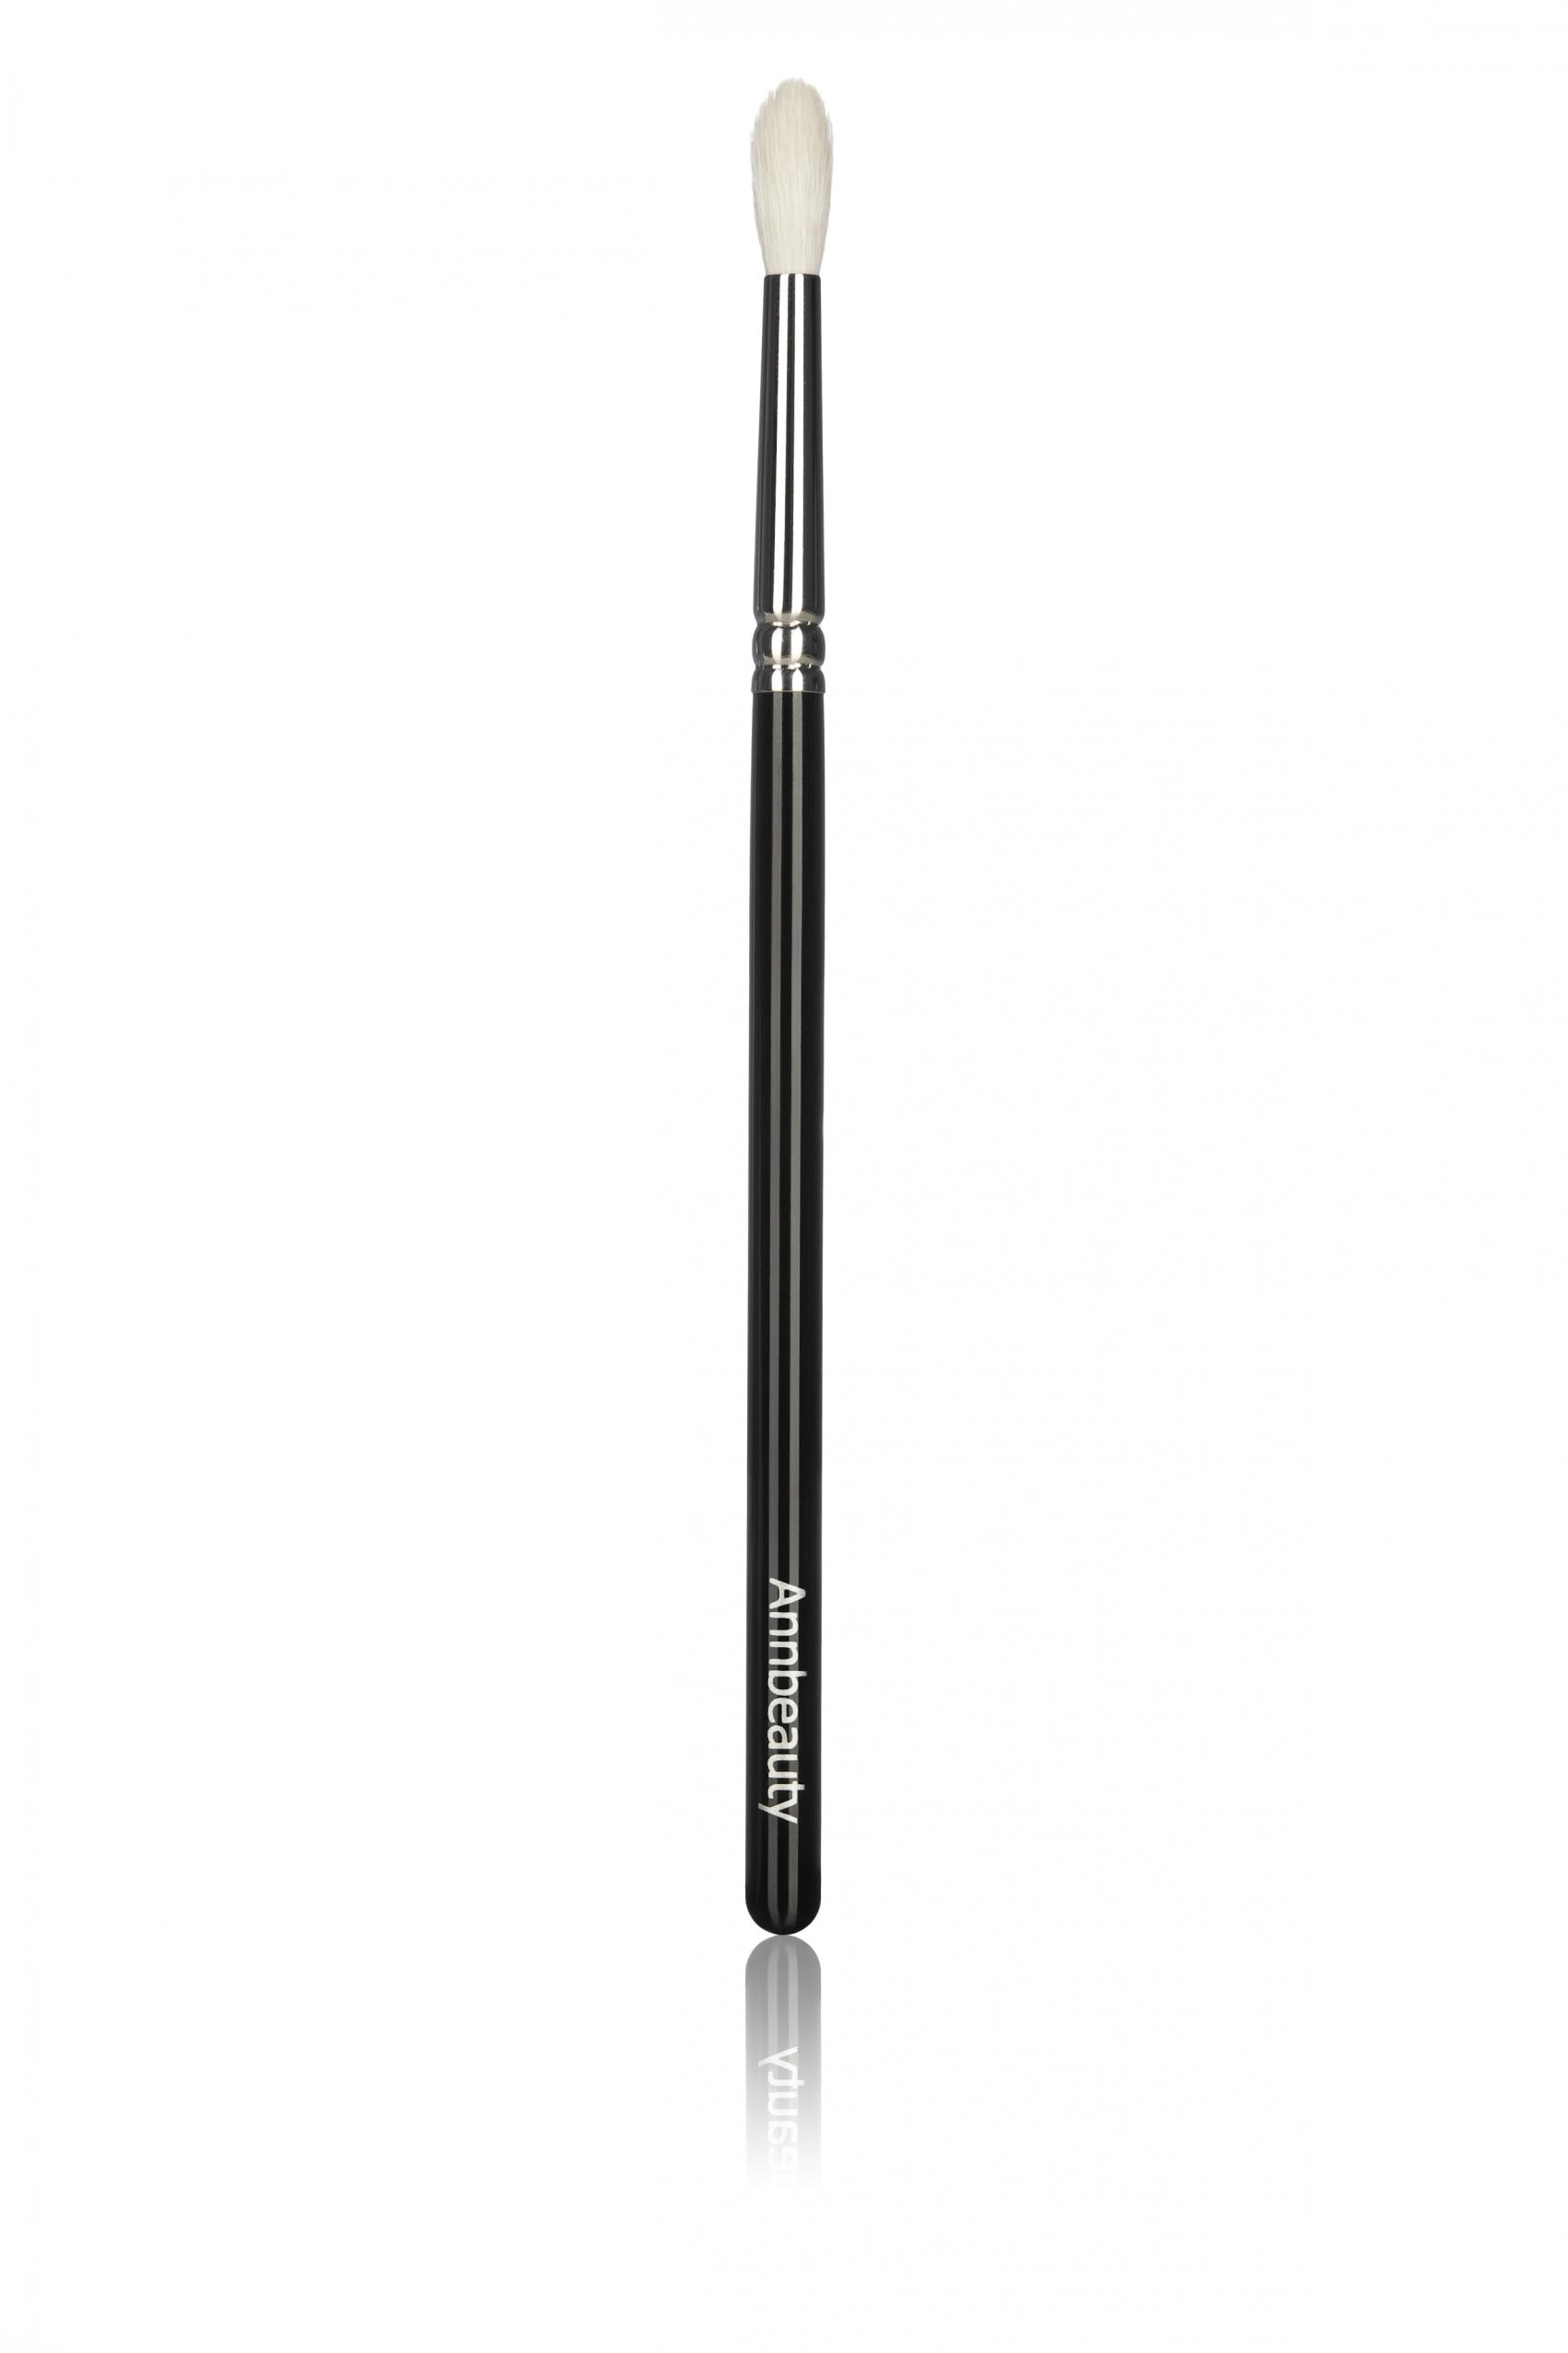 Annbeauty A8 Eyeshadow Brush